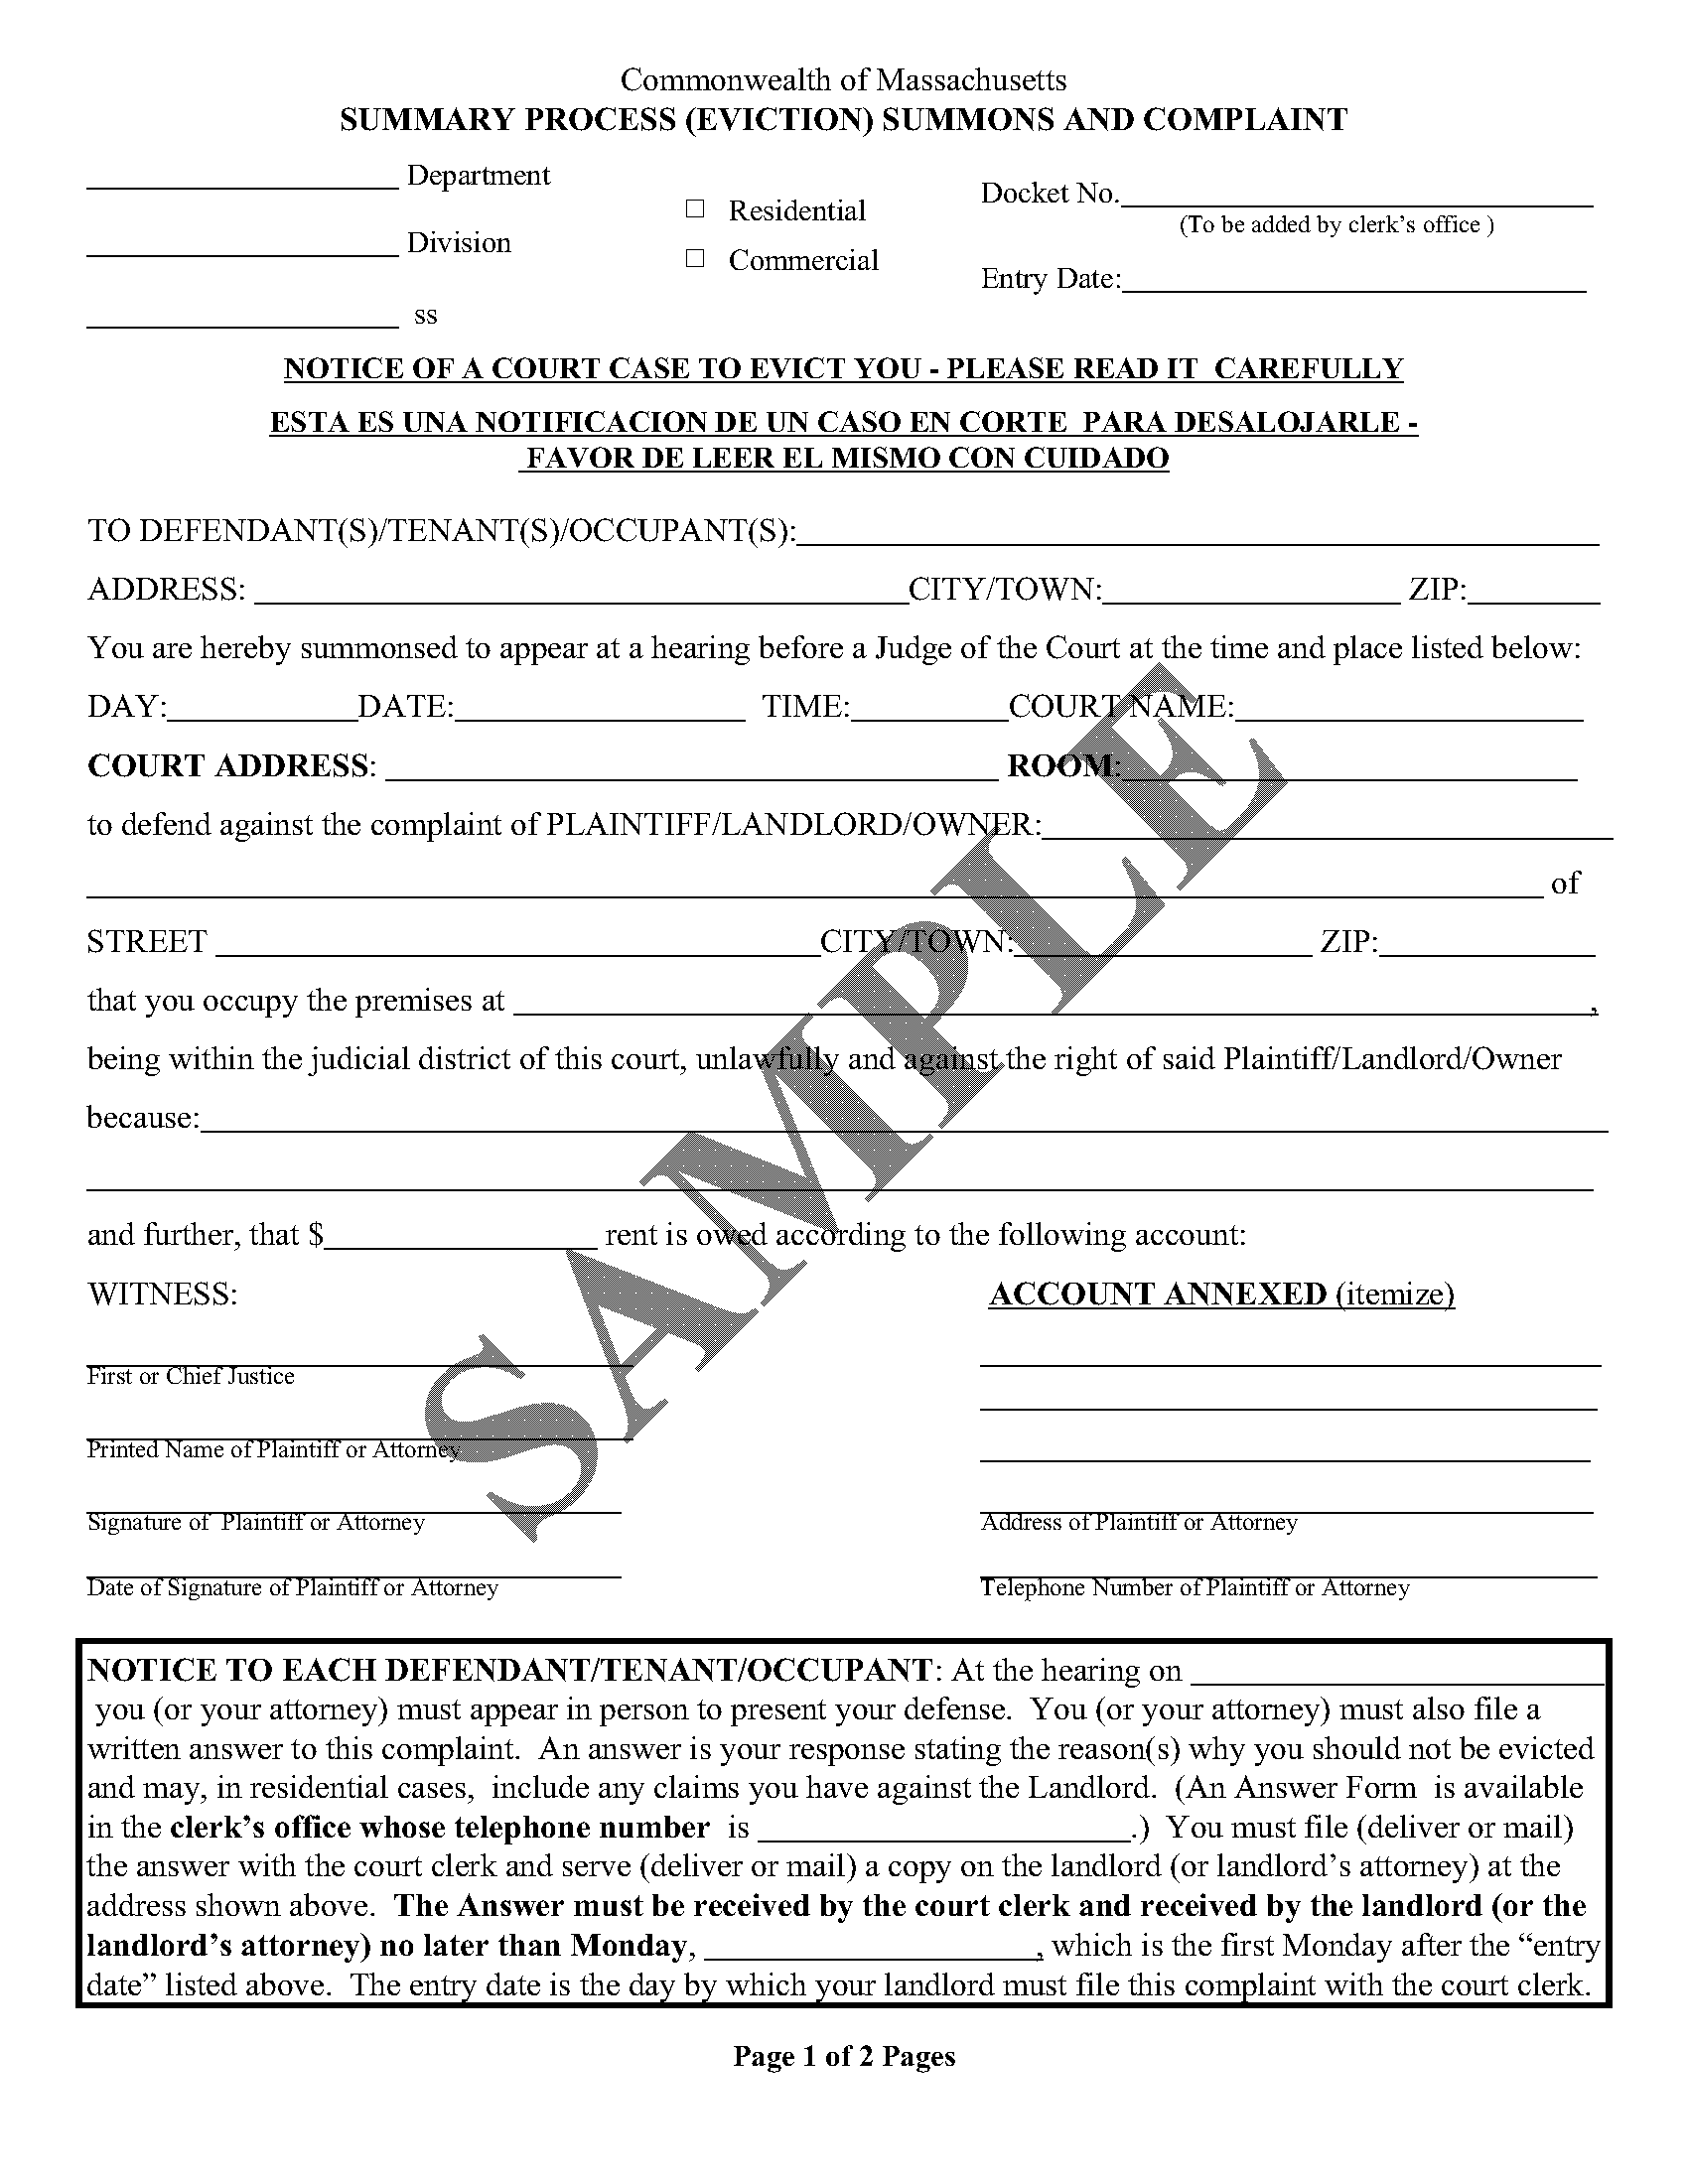 summons_and_complaint